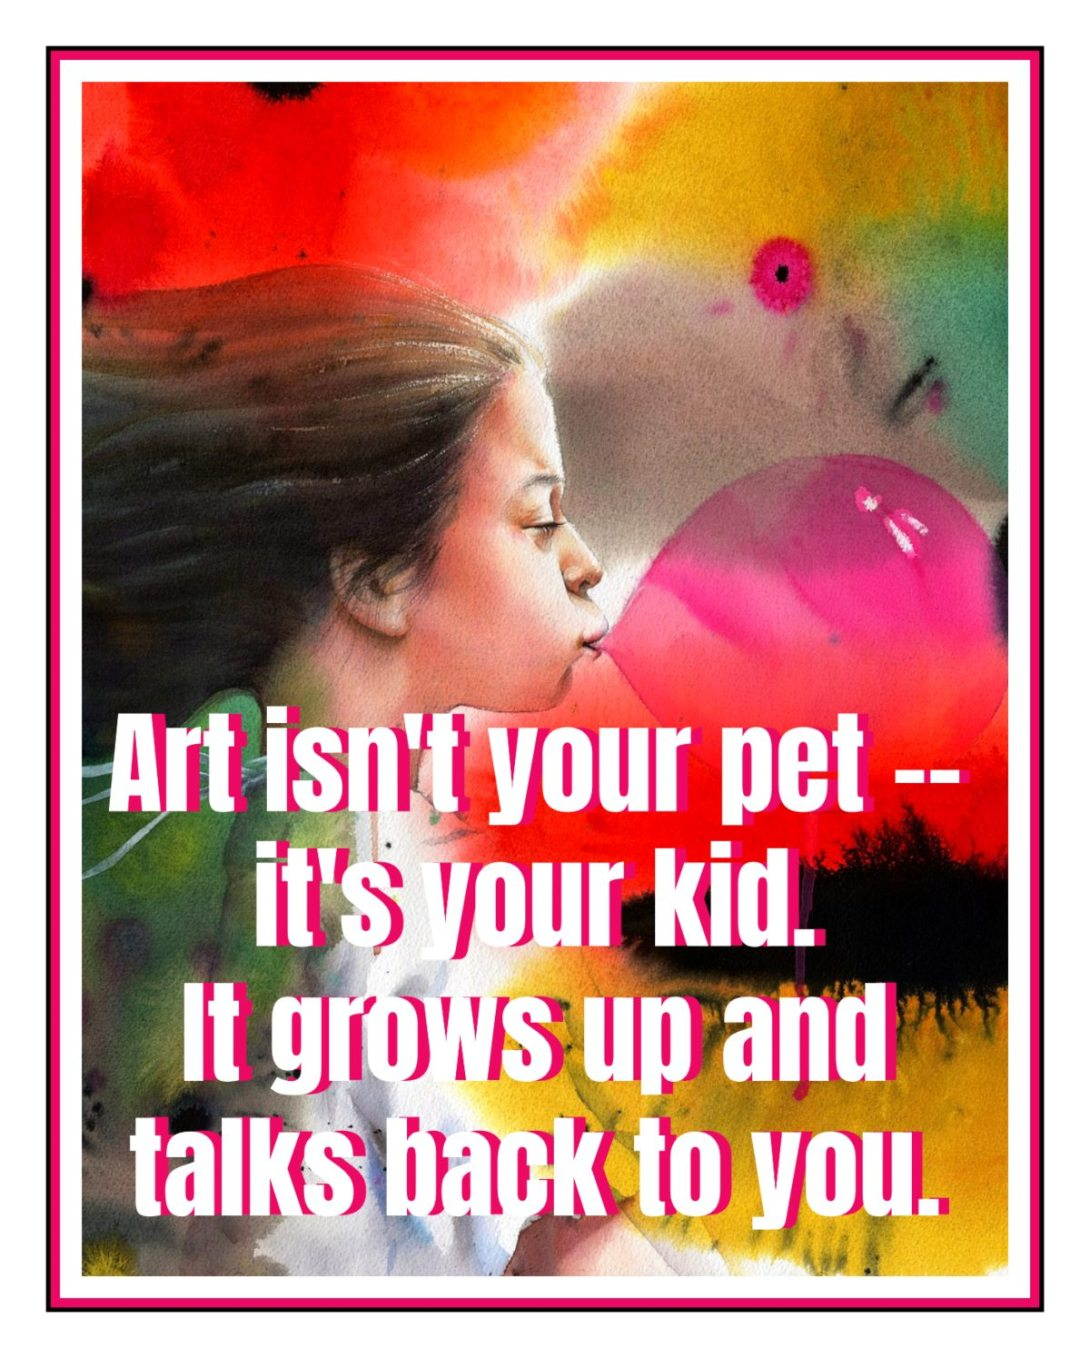 All worthy work is open to interpretations the author did not intend. Art isn't your pet -- it's your kid. It grows up and talks back to you. Joss Whedon #quote bekitschig.blog